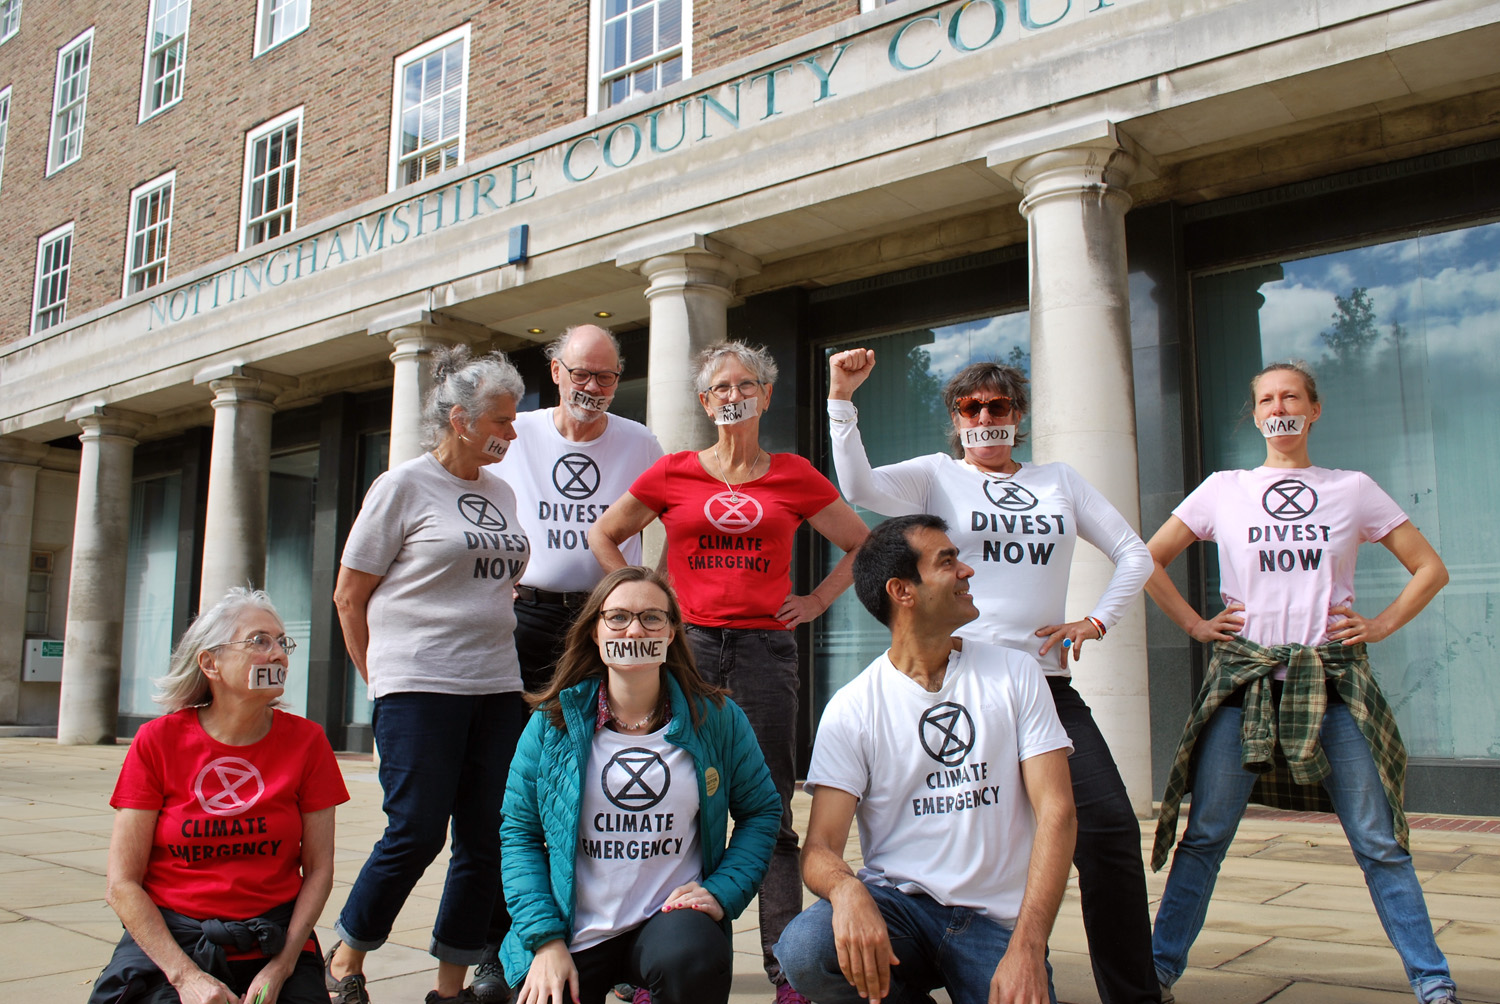 Rebels in Divest Now t-shirts